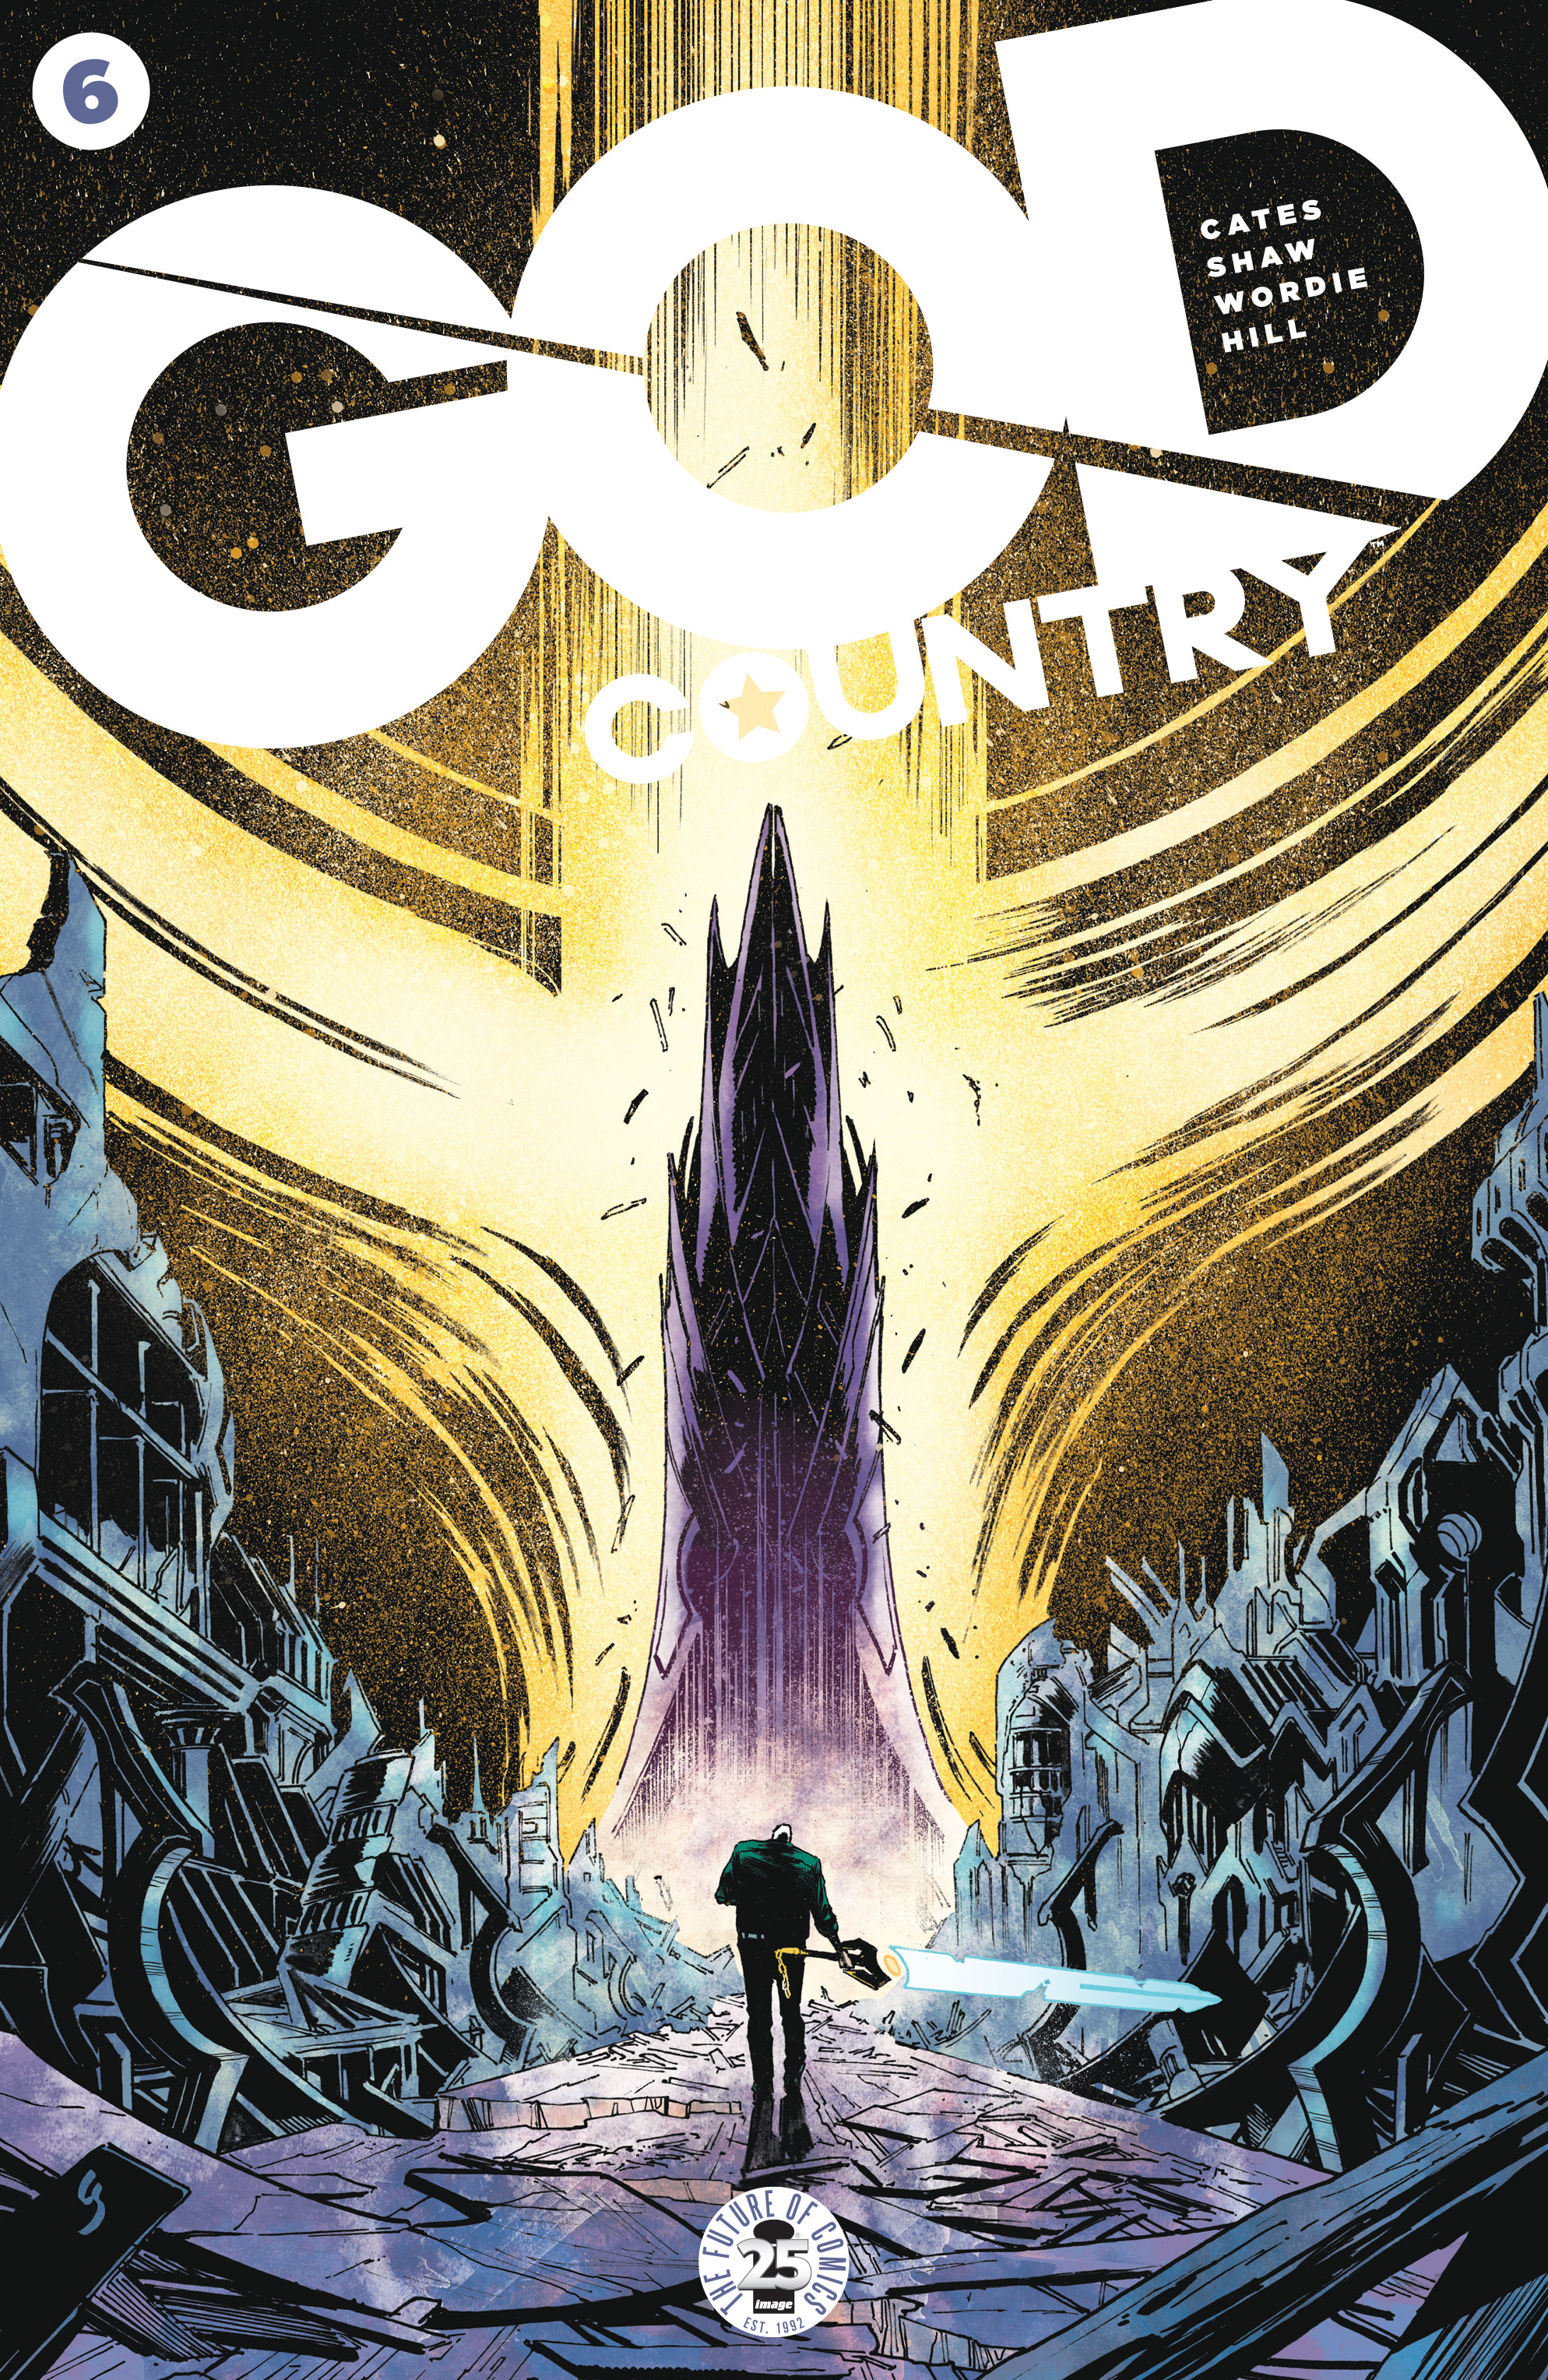 Read online God Country comic -  Issue #6 - 1